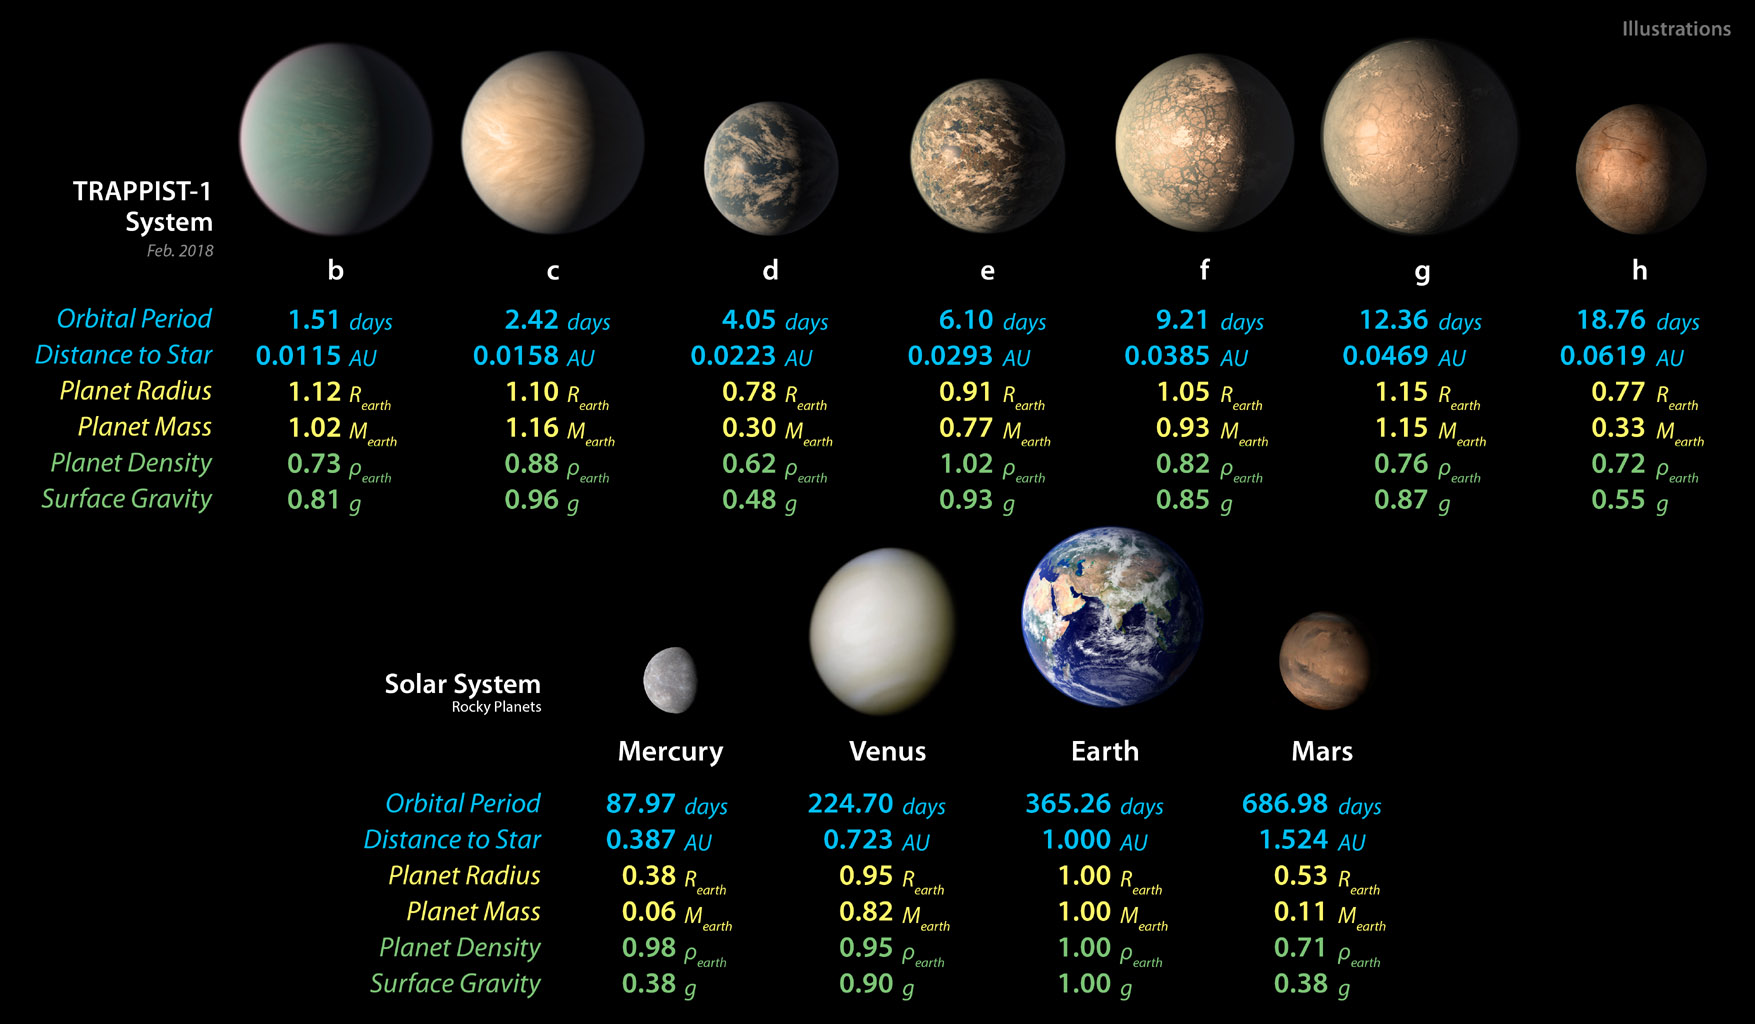 This chart shows, on the top row, artist concepts of the seven planets of TRAPPIST-1 with their orbital periods, distances from their star, radii, masses, densities and surface gravity as compared to those of Earth. Image Credit: NASA/JPL-Caltech